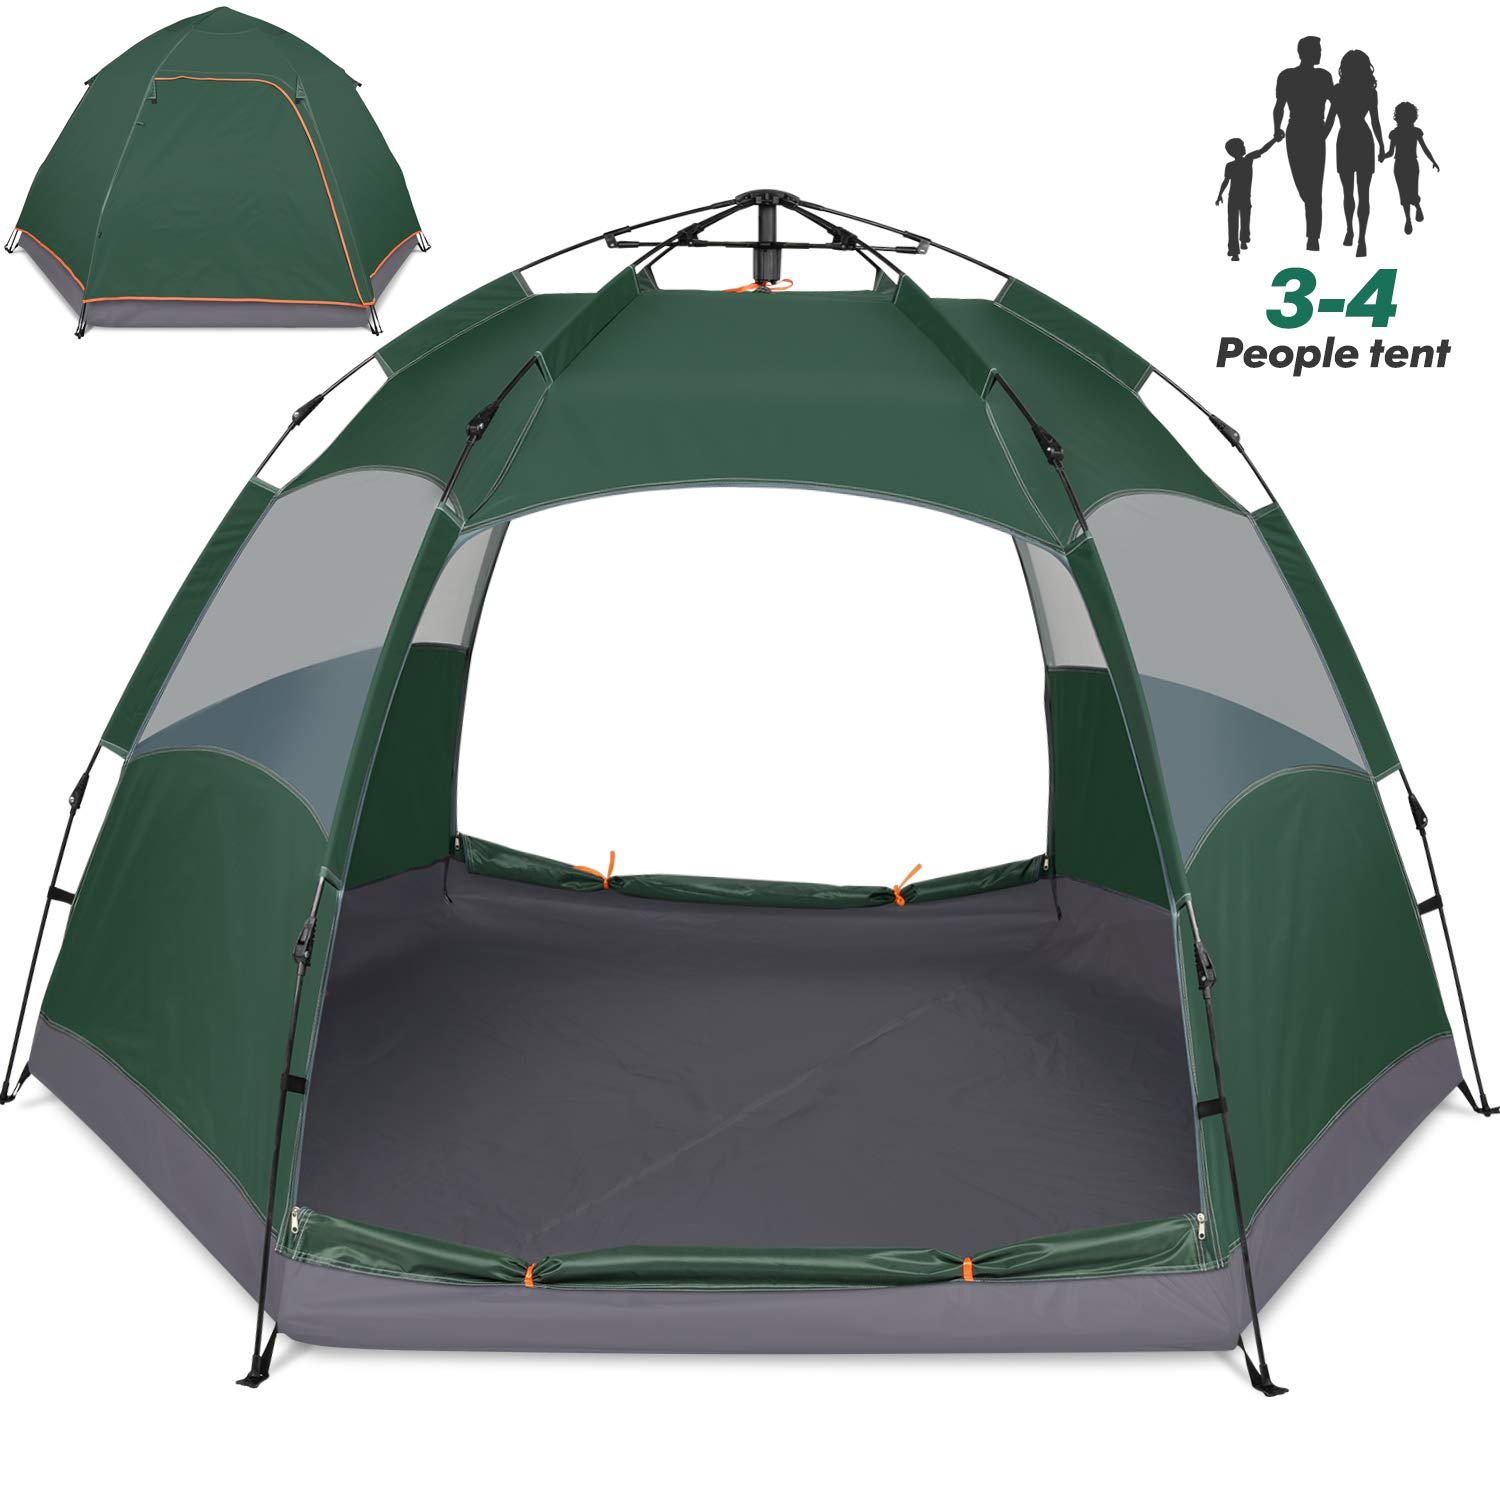 Amagoing 3-4 Person Tents for Camping Instant Setup Tent Double Layer Waterproof for 4 Seasons by Amagoing